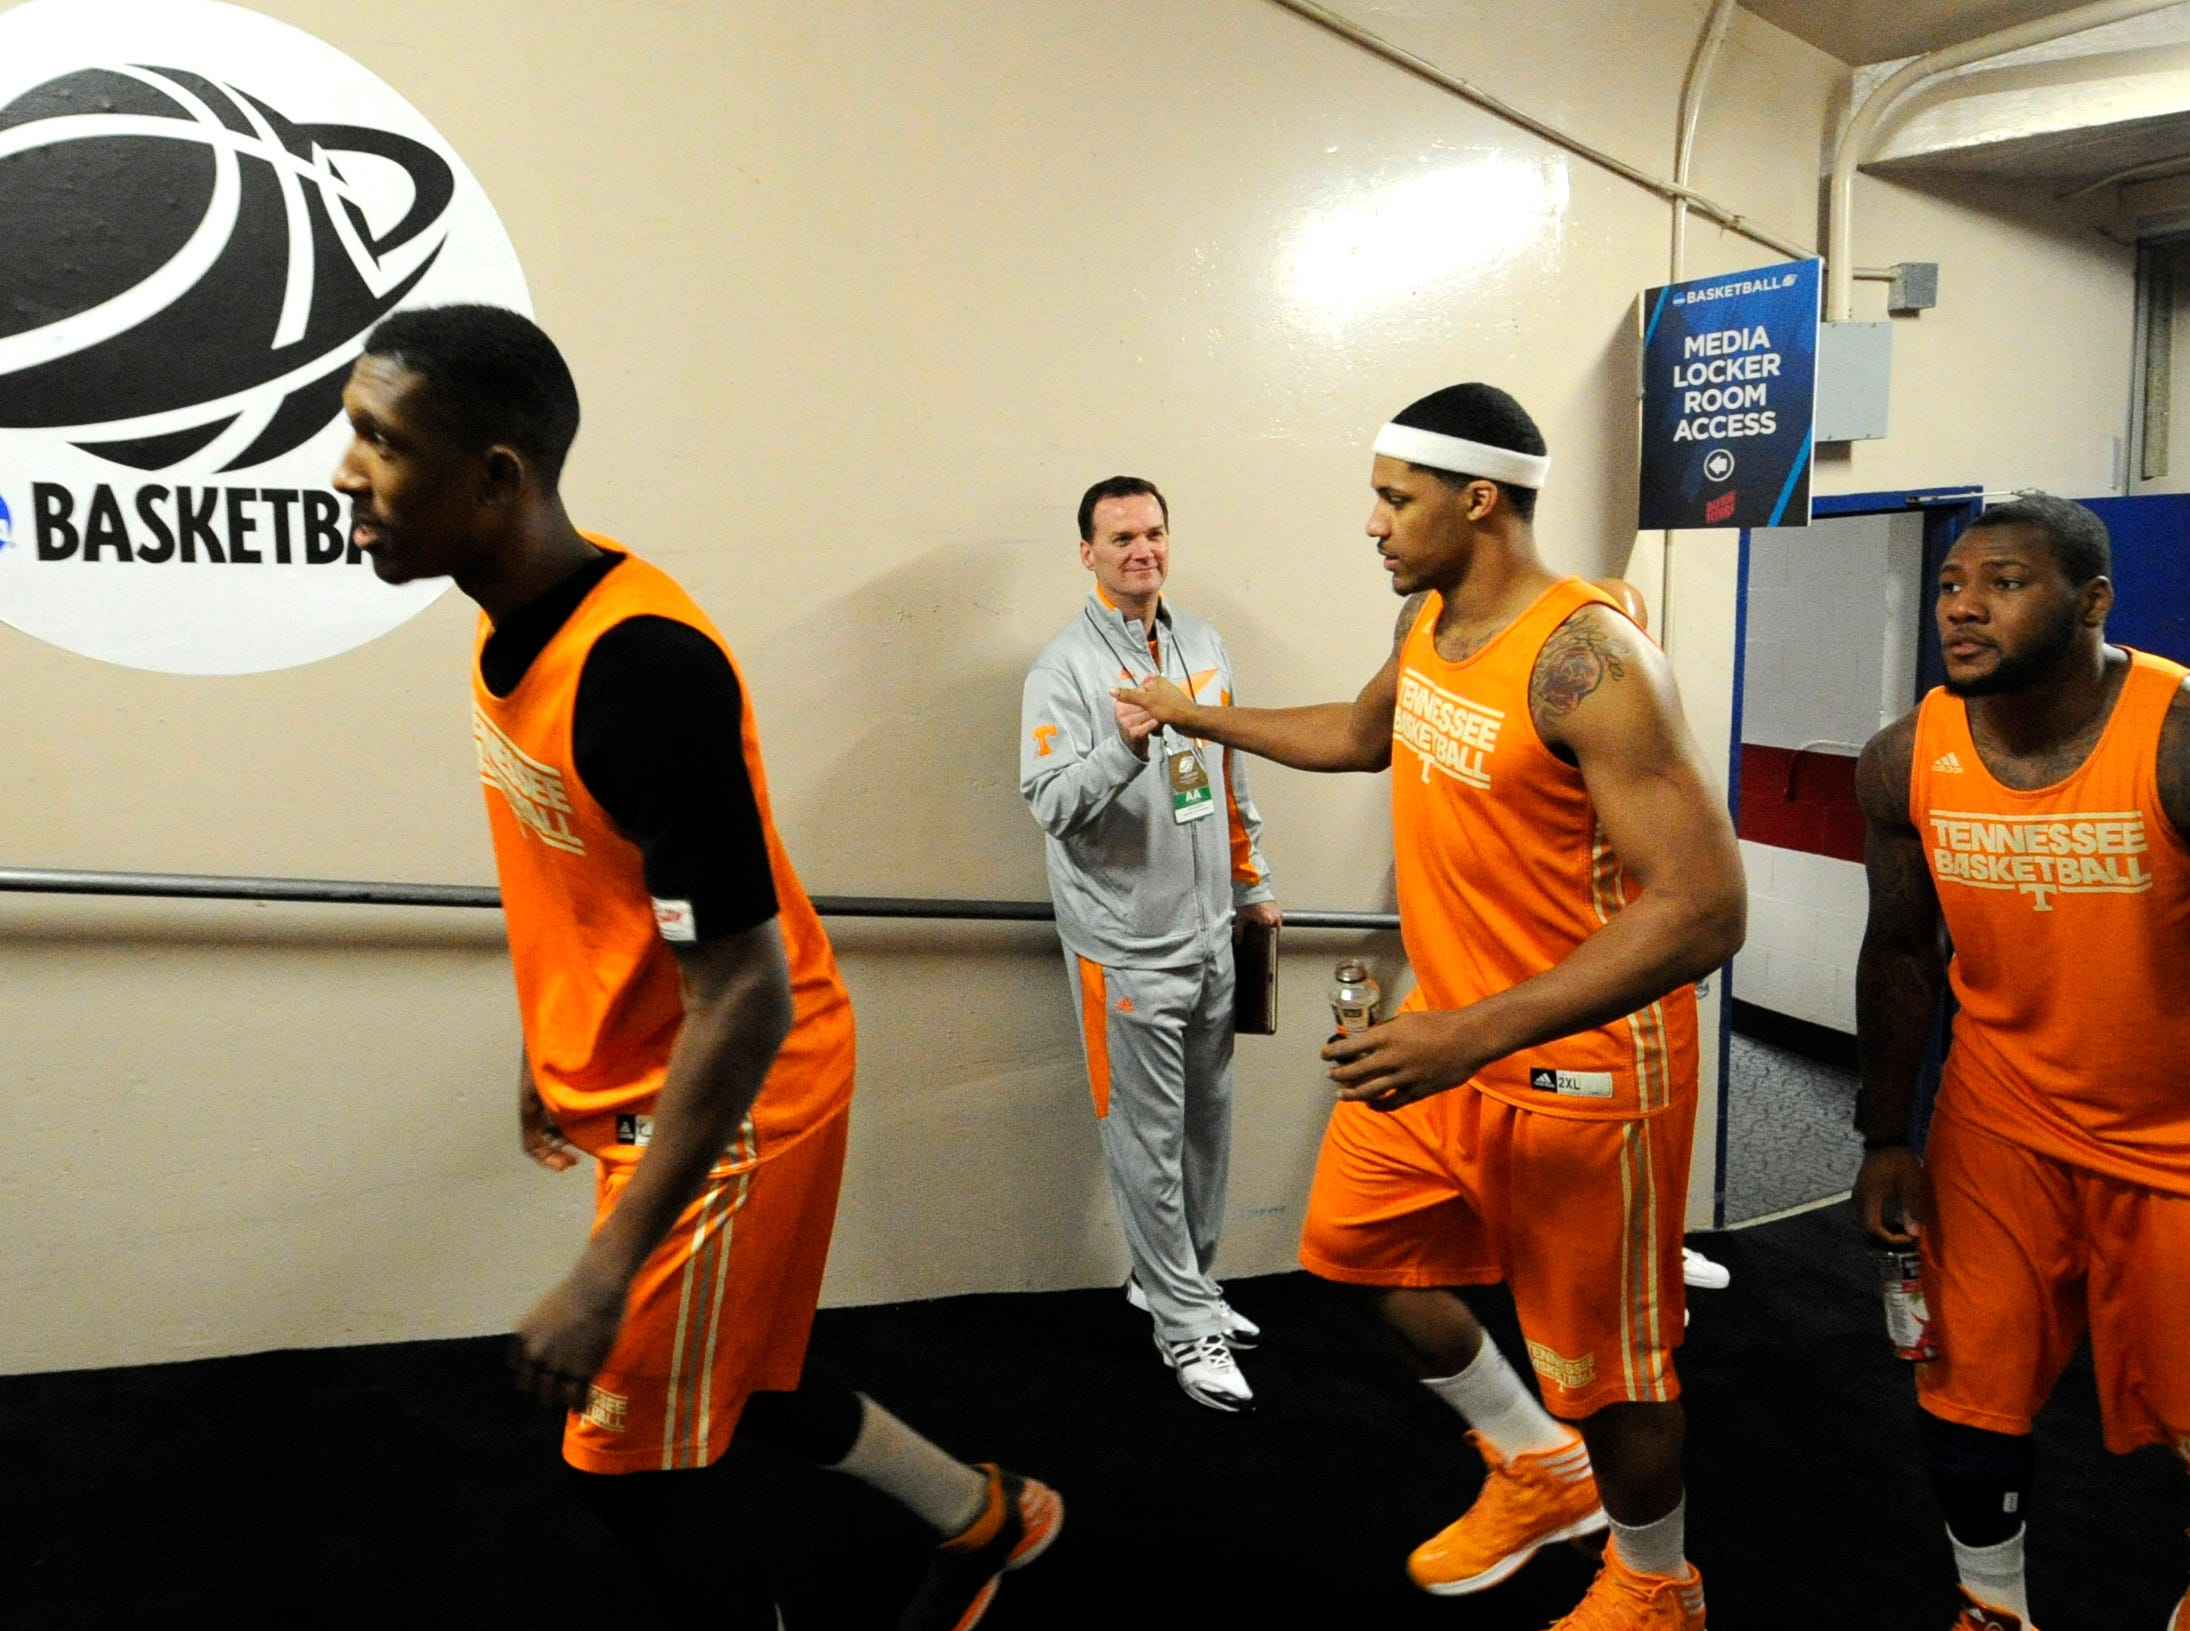 Tennessee guard Josh Richardson (1), Tennessee forward Jarnell Stokes (5), and Tennessee forward Jeronne Maymon (34), from left, emerge from the locker room for a press conference before an NCAA tournament first round game against Iowa at the University of Dayton Arena in Dayton, Ohio on Tuesday, March 18, 2014.